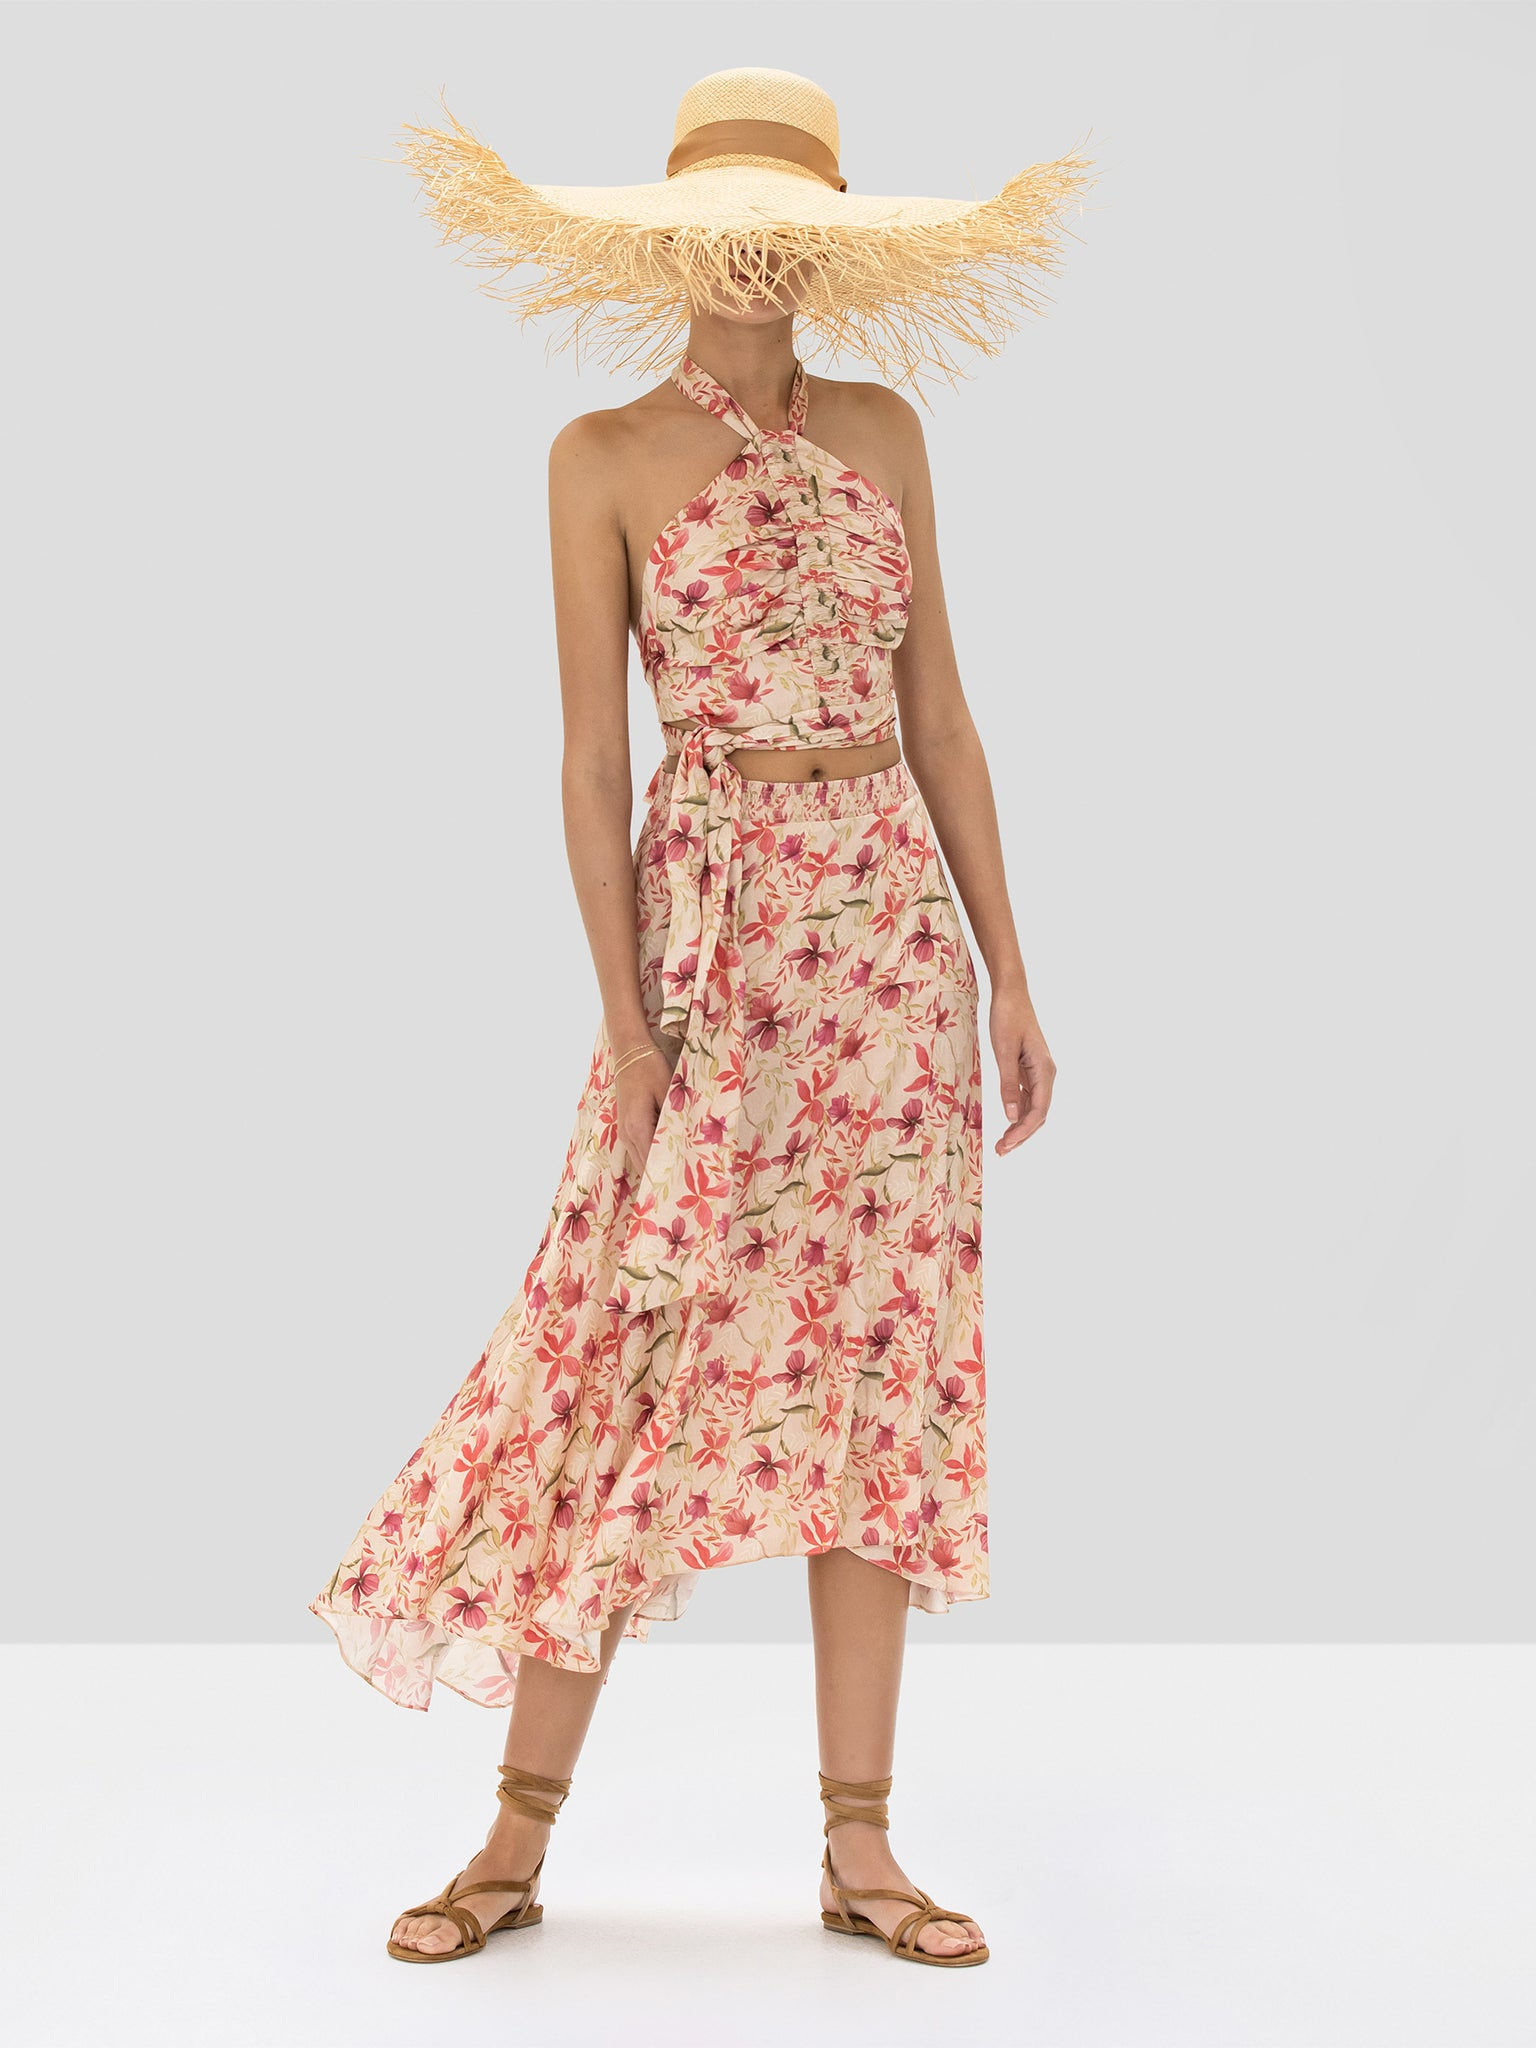 The Bazli Skirt in Wild Orchid Rose from the Spring Summer 2020